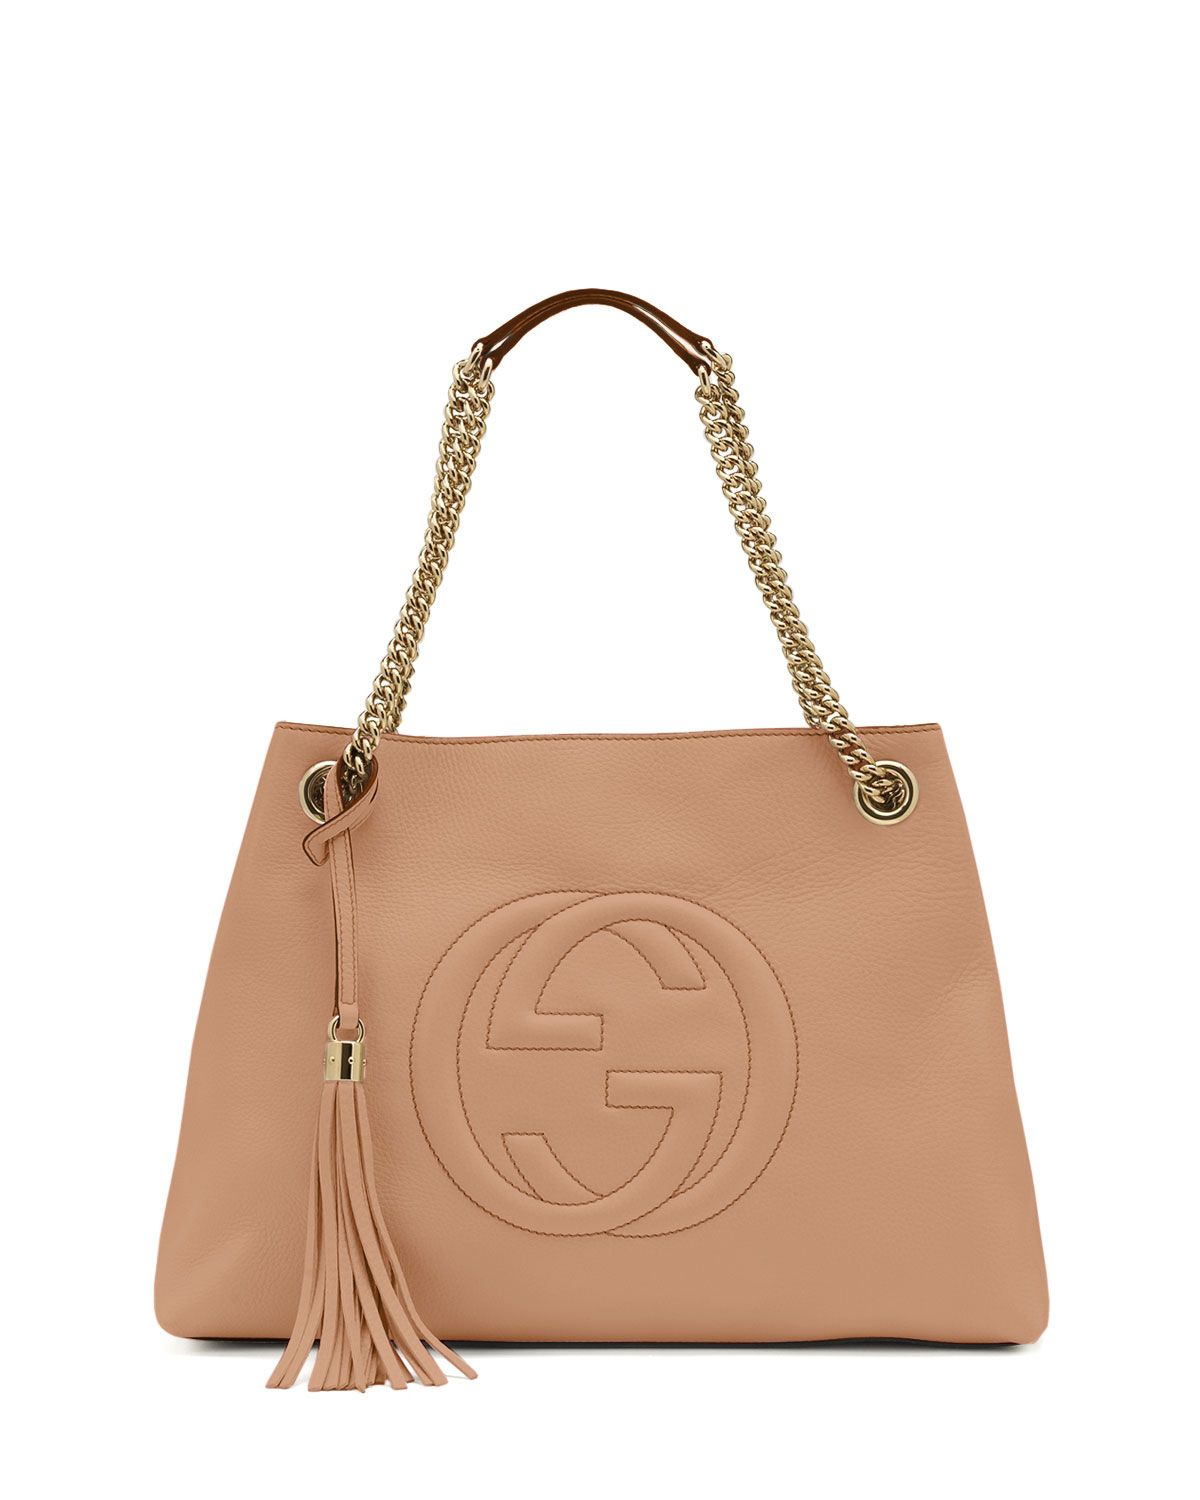 The Price Of Gucci Handbags In South Africa